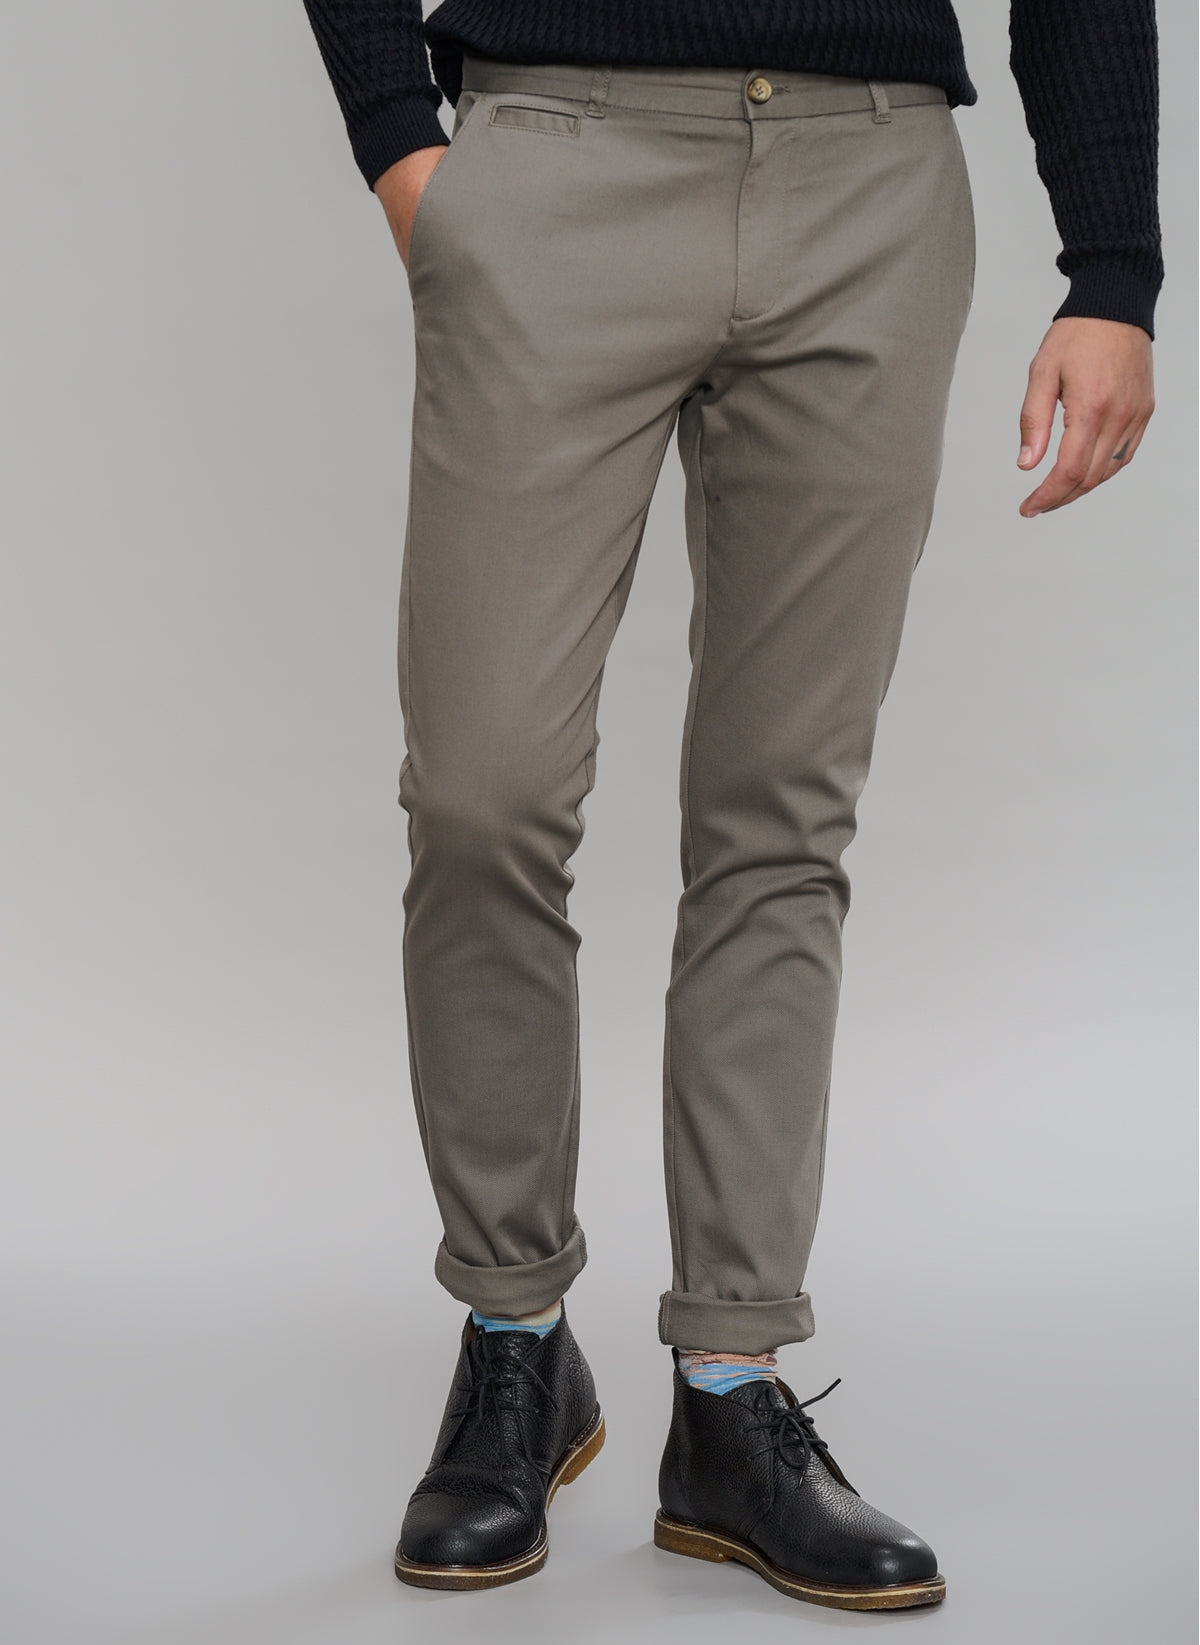 Slim Fit Chino Pants in Taupe